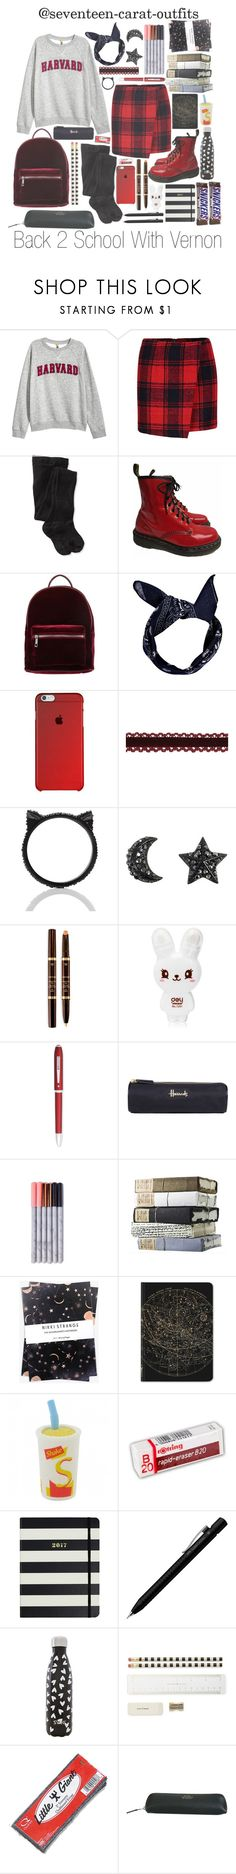 """""""Back 2 School with Vernon"""" by seventeen-carat-outfits ❤ liked on Polyvore featuring H&M, Smartwool, Dr. Martens, even&odd, Boohoo, Kate Spade, Tom Ford, Cross, Harrods and Nikki Strange"""